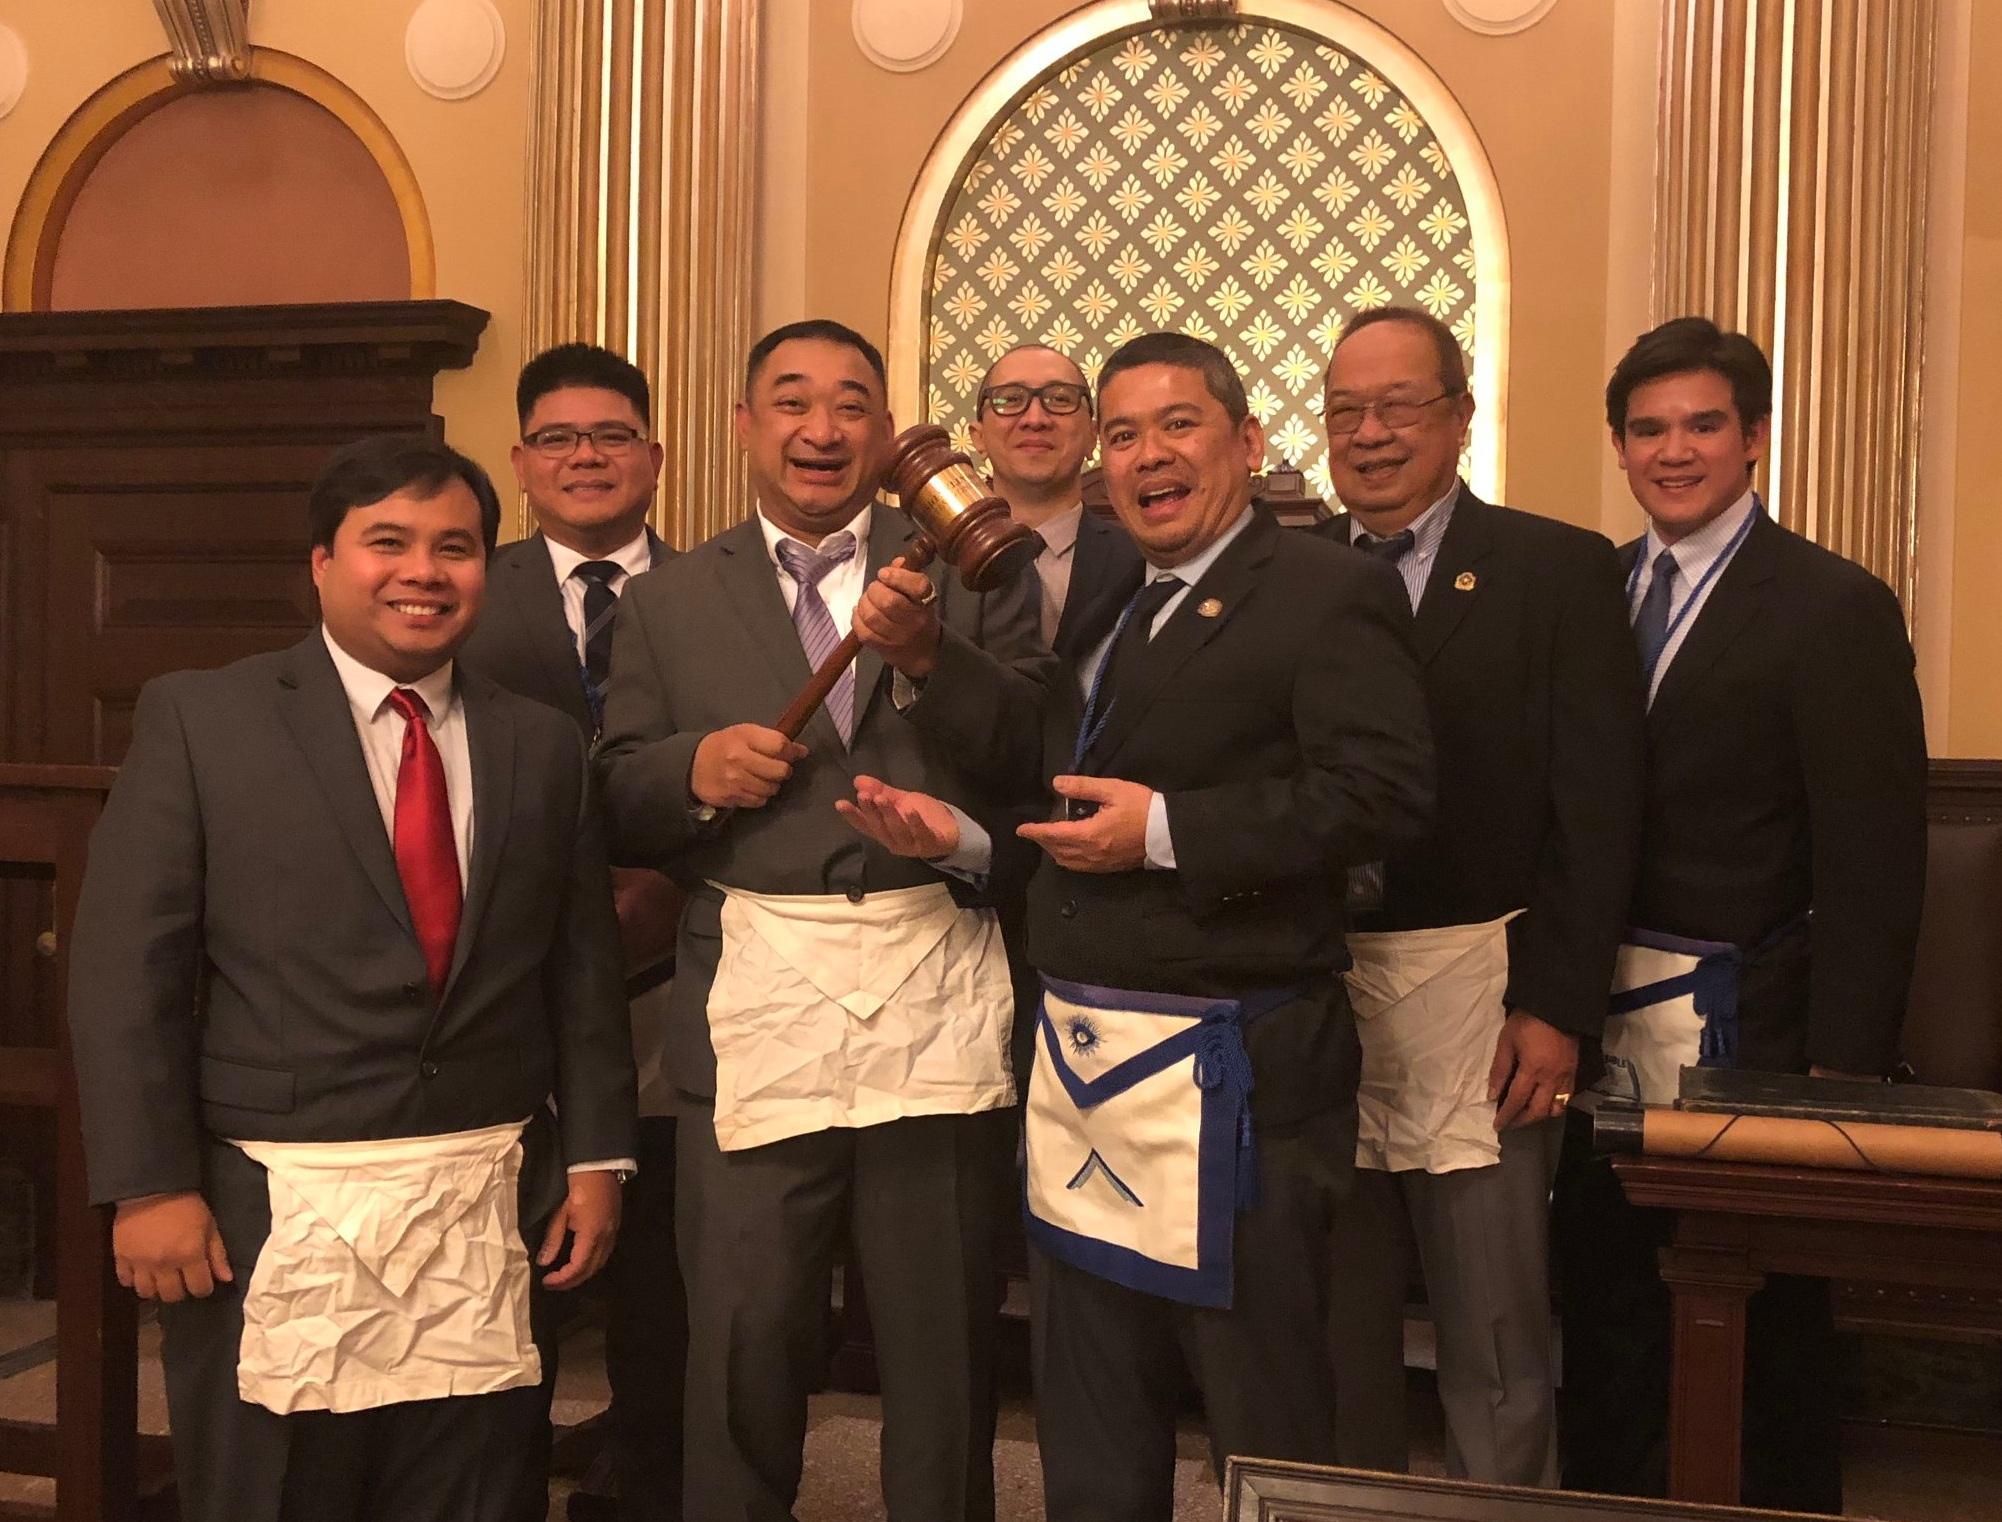 Manahatta Lodge No. 449 obtains the Traveling Gavel from Columbian Lodge No. 484 on Friday, January 18, 2019. Manahatta possesses it again!!!   From L-R: Bro. Kahrl Bigornia (Manahatta 449, Tiler), Bro. Ariel Domingo (Manahatta 449, Senior Steward), WBro. Benjie Santos (Manahatta 449, Master), Bro. Kenneth Garcia (Manahatta 449, Historian), WBro. Janzon Teng (Columbia 484, Master), Bro. Lito Belmonte (Manahatta 449, Senior Deacon), WBro. Jephthah Dais (Manahatta 449, Secretary).